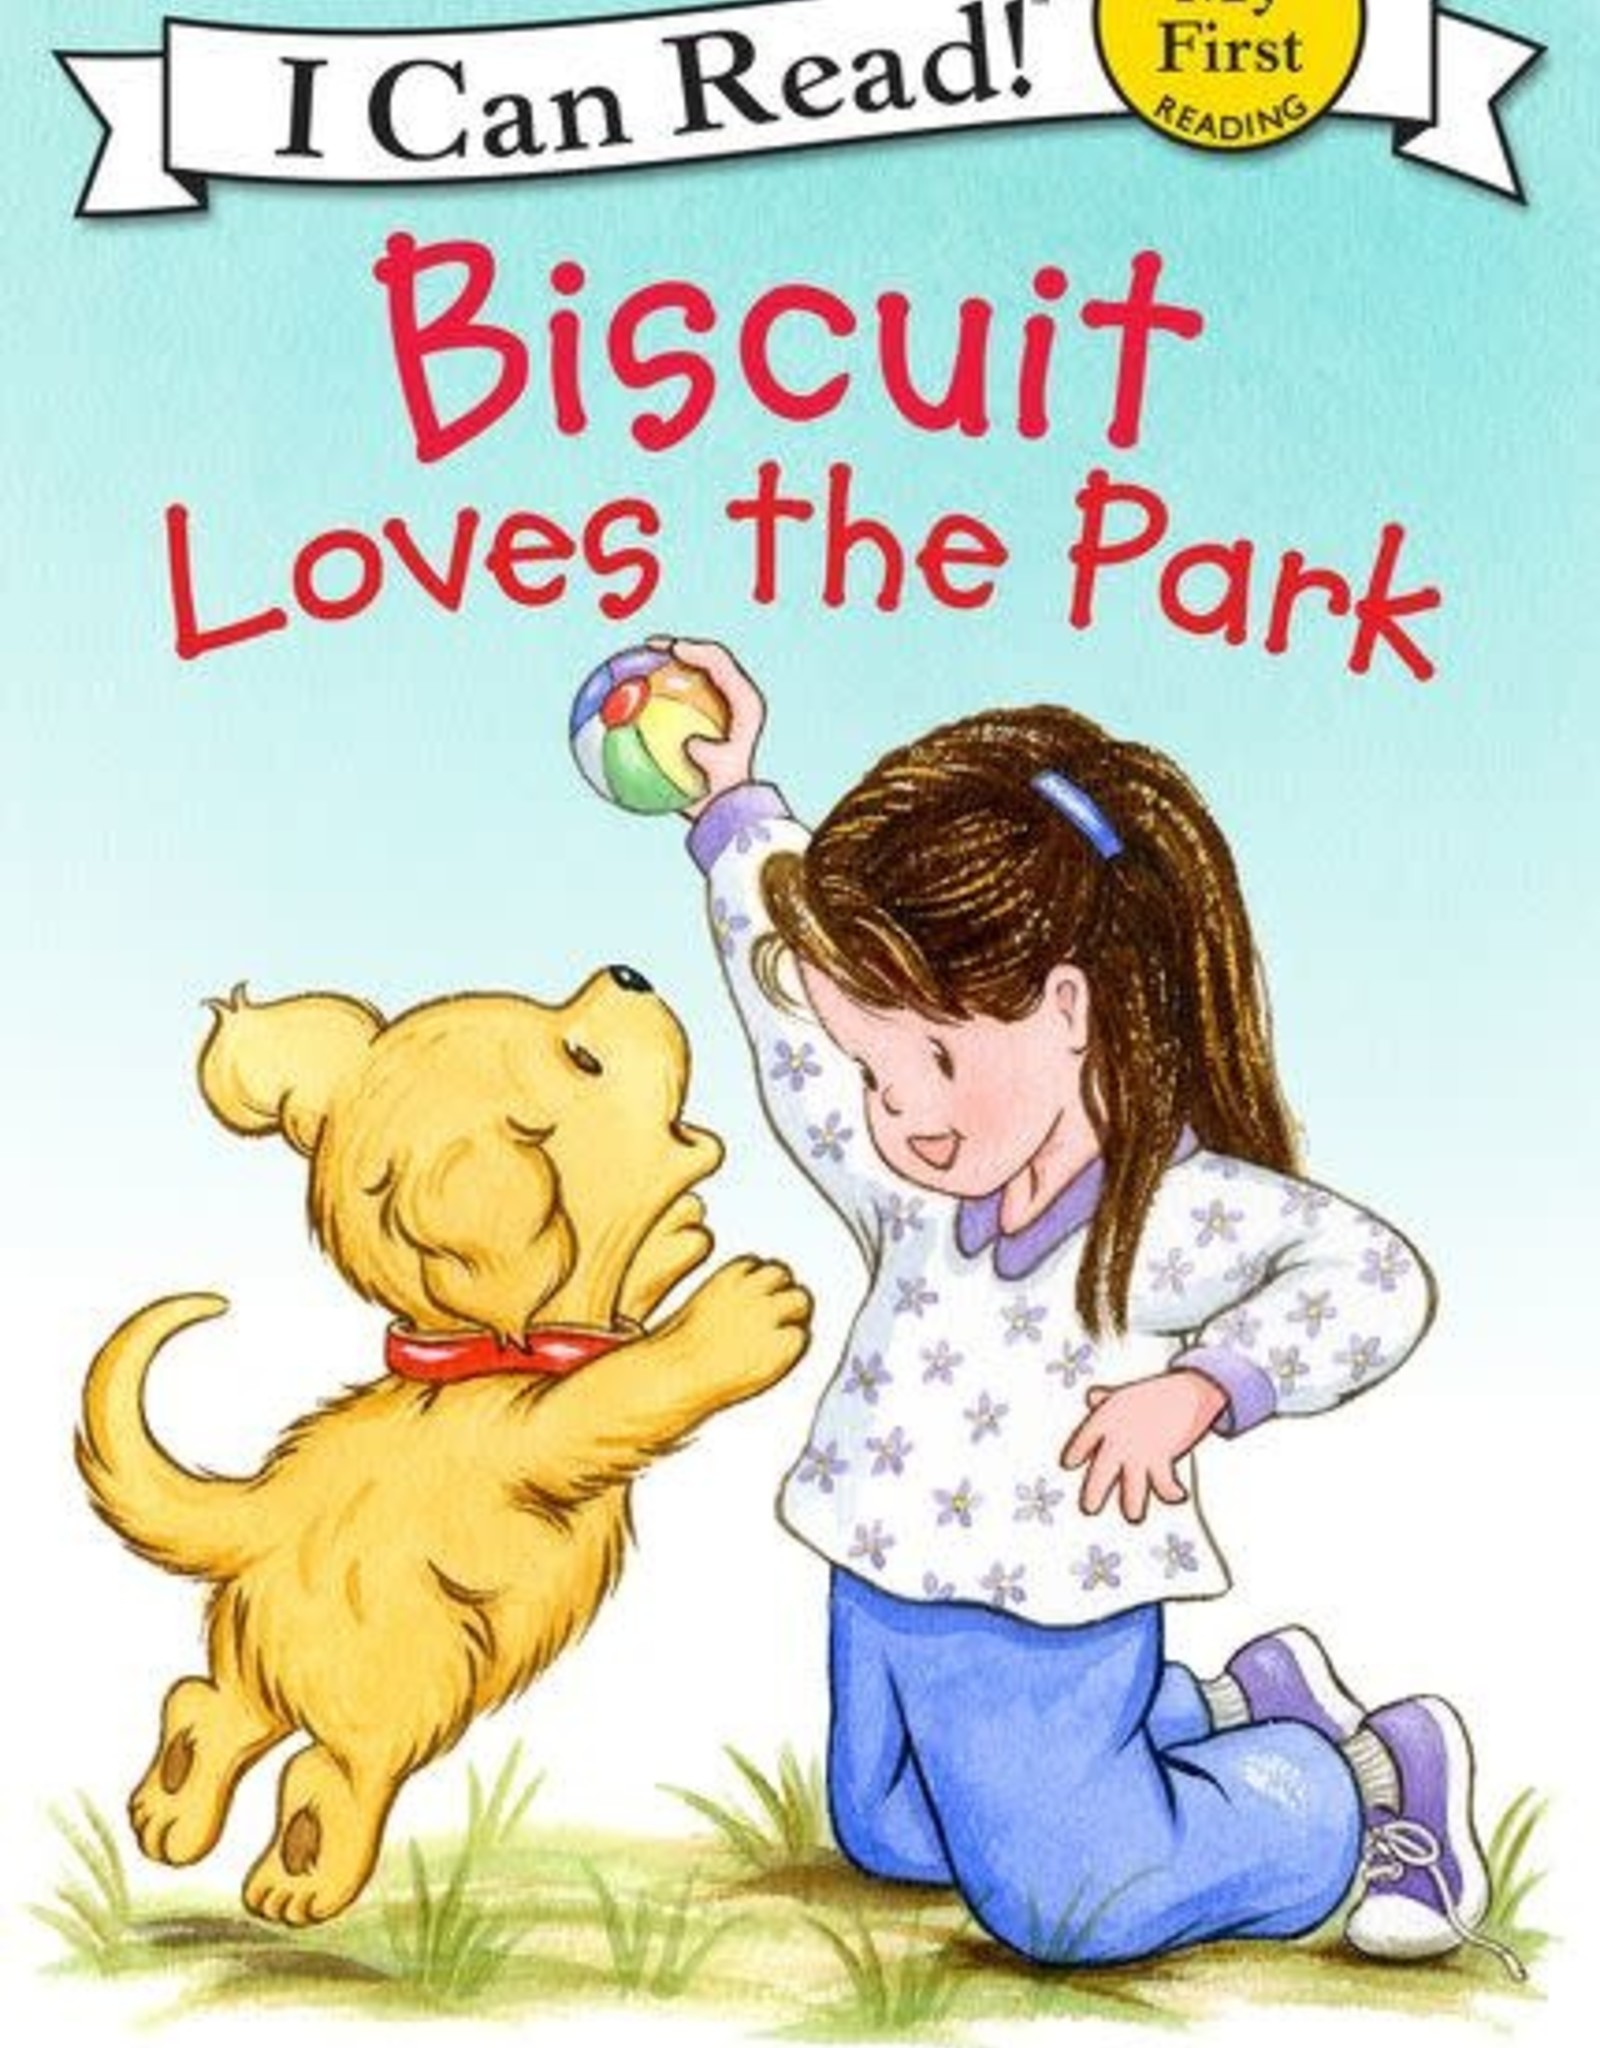 I Can Read! Biscuit Loves the Park